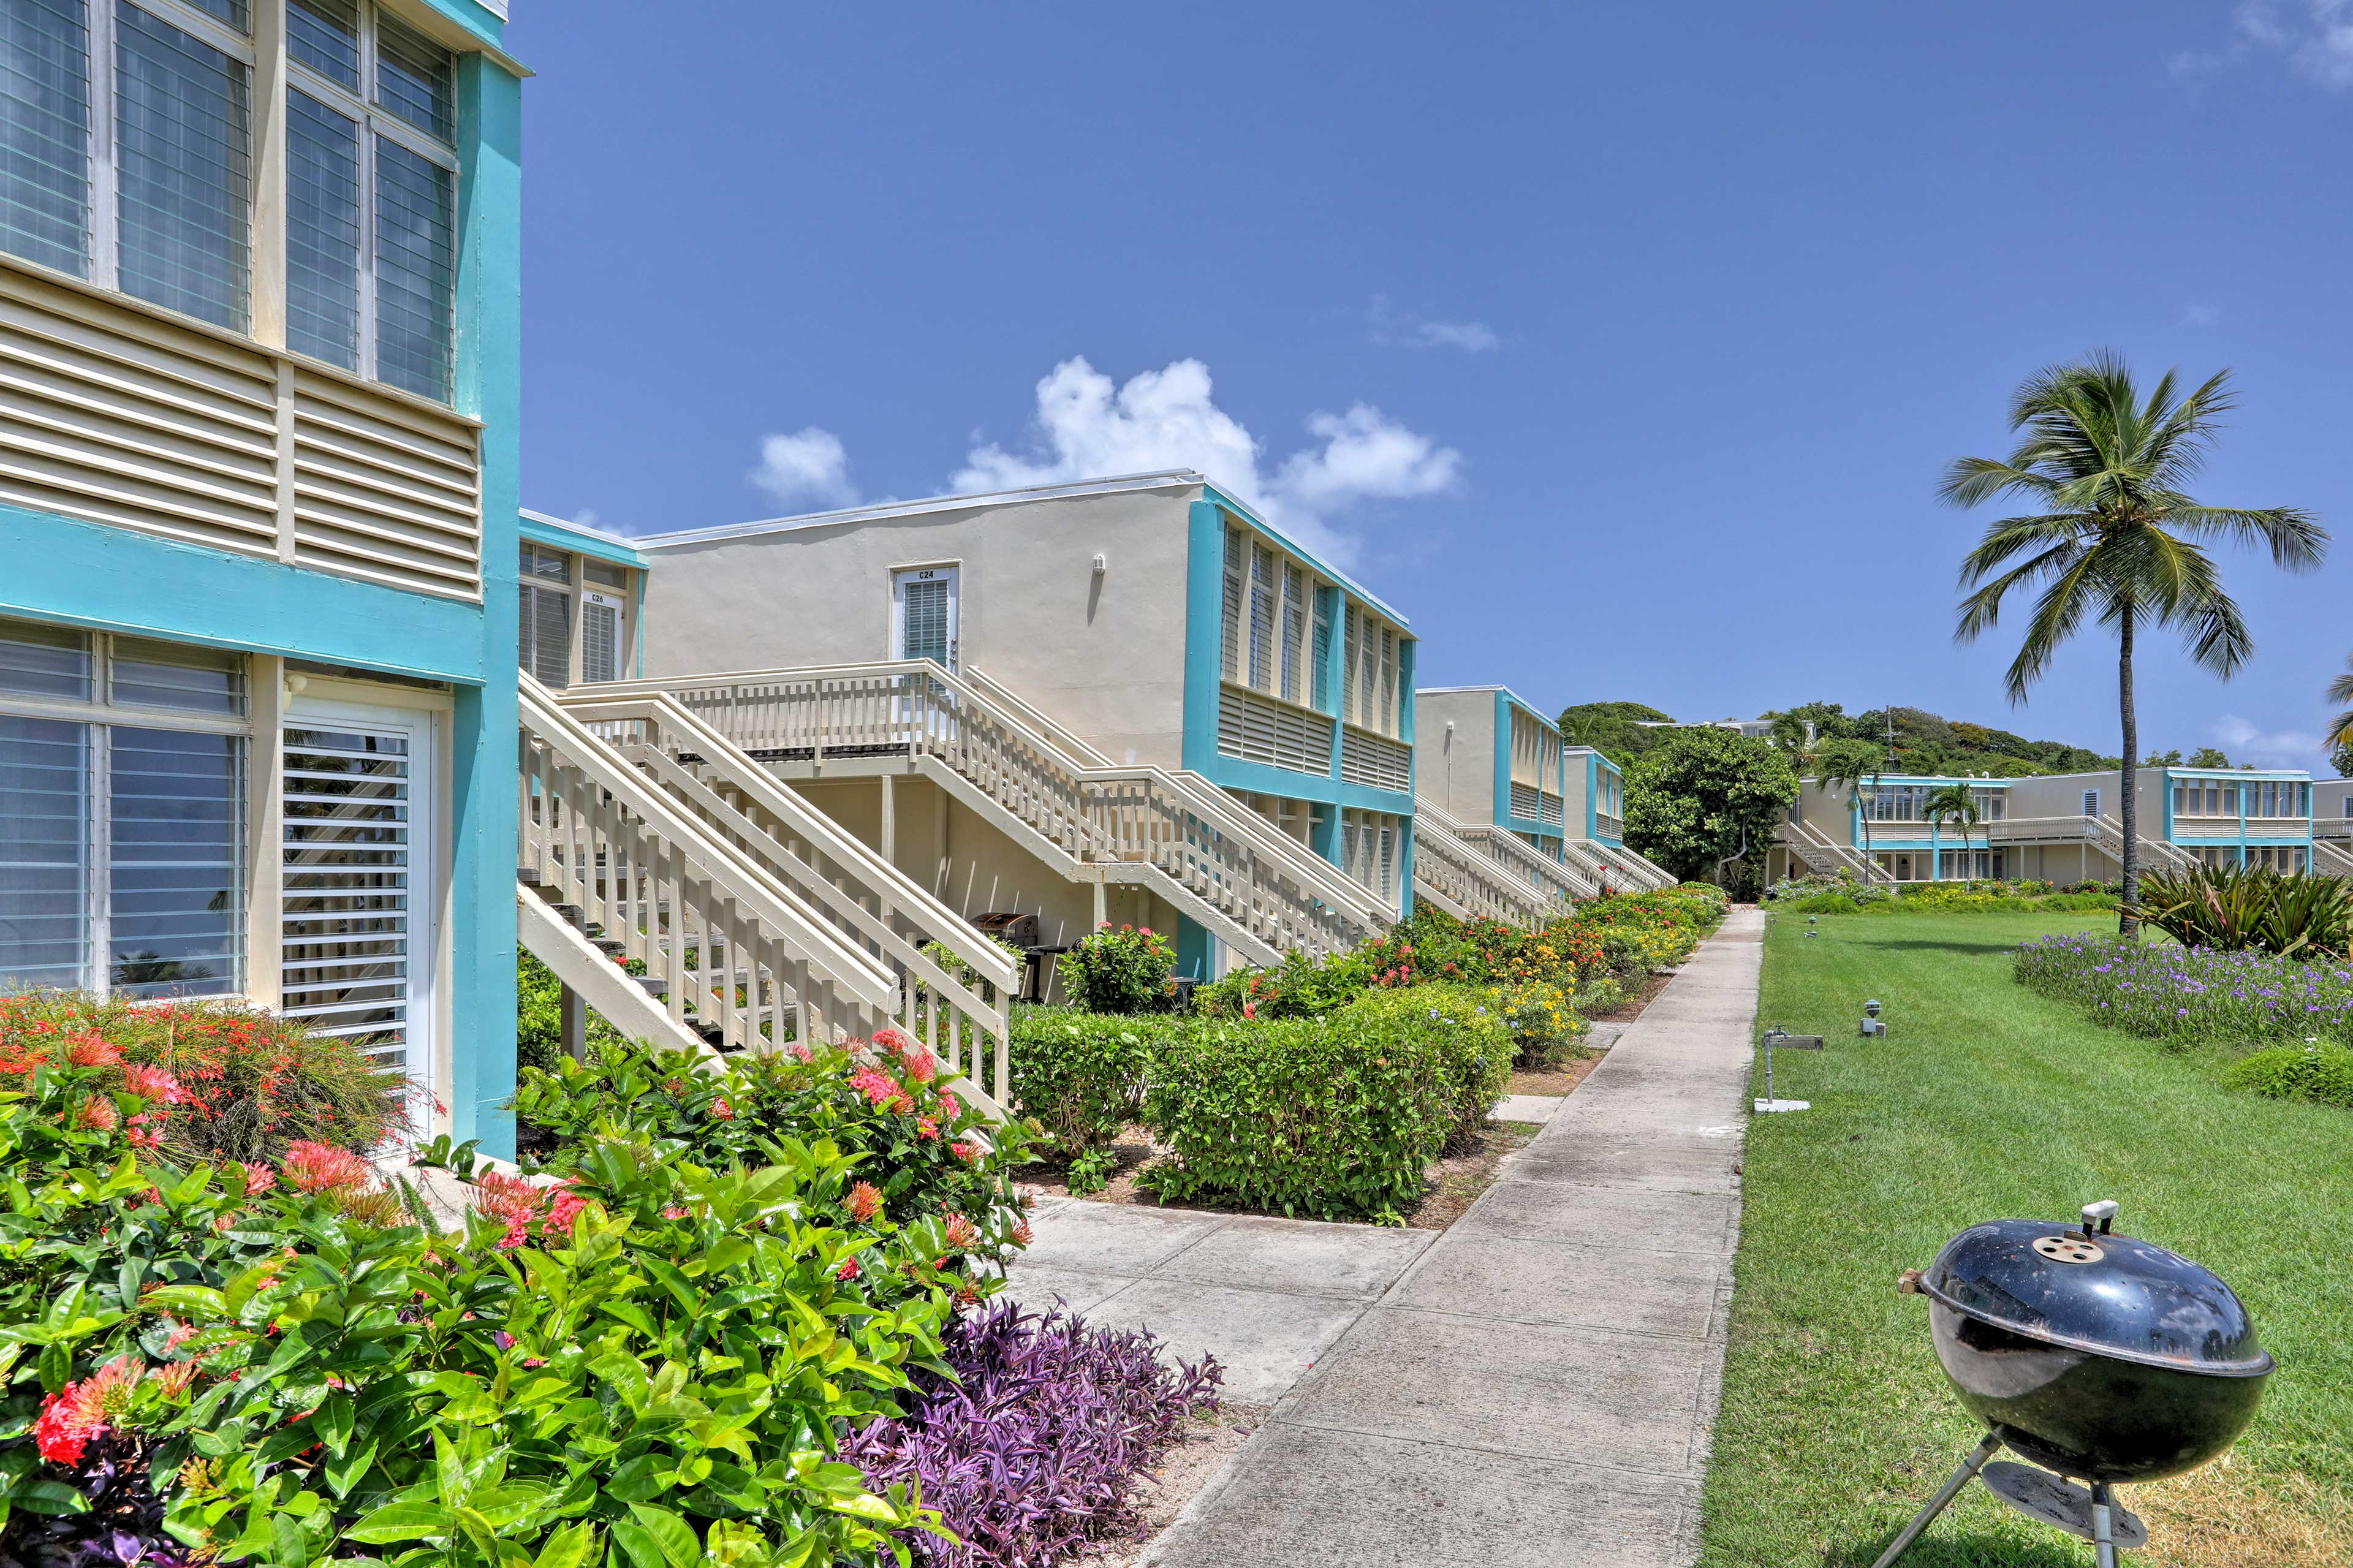 Up to 4 travelers will adore the amenities at Sapphire Bay Condominiums West.